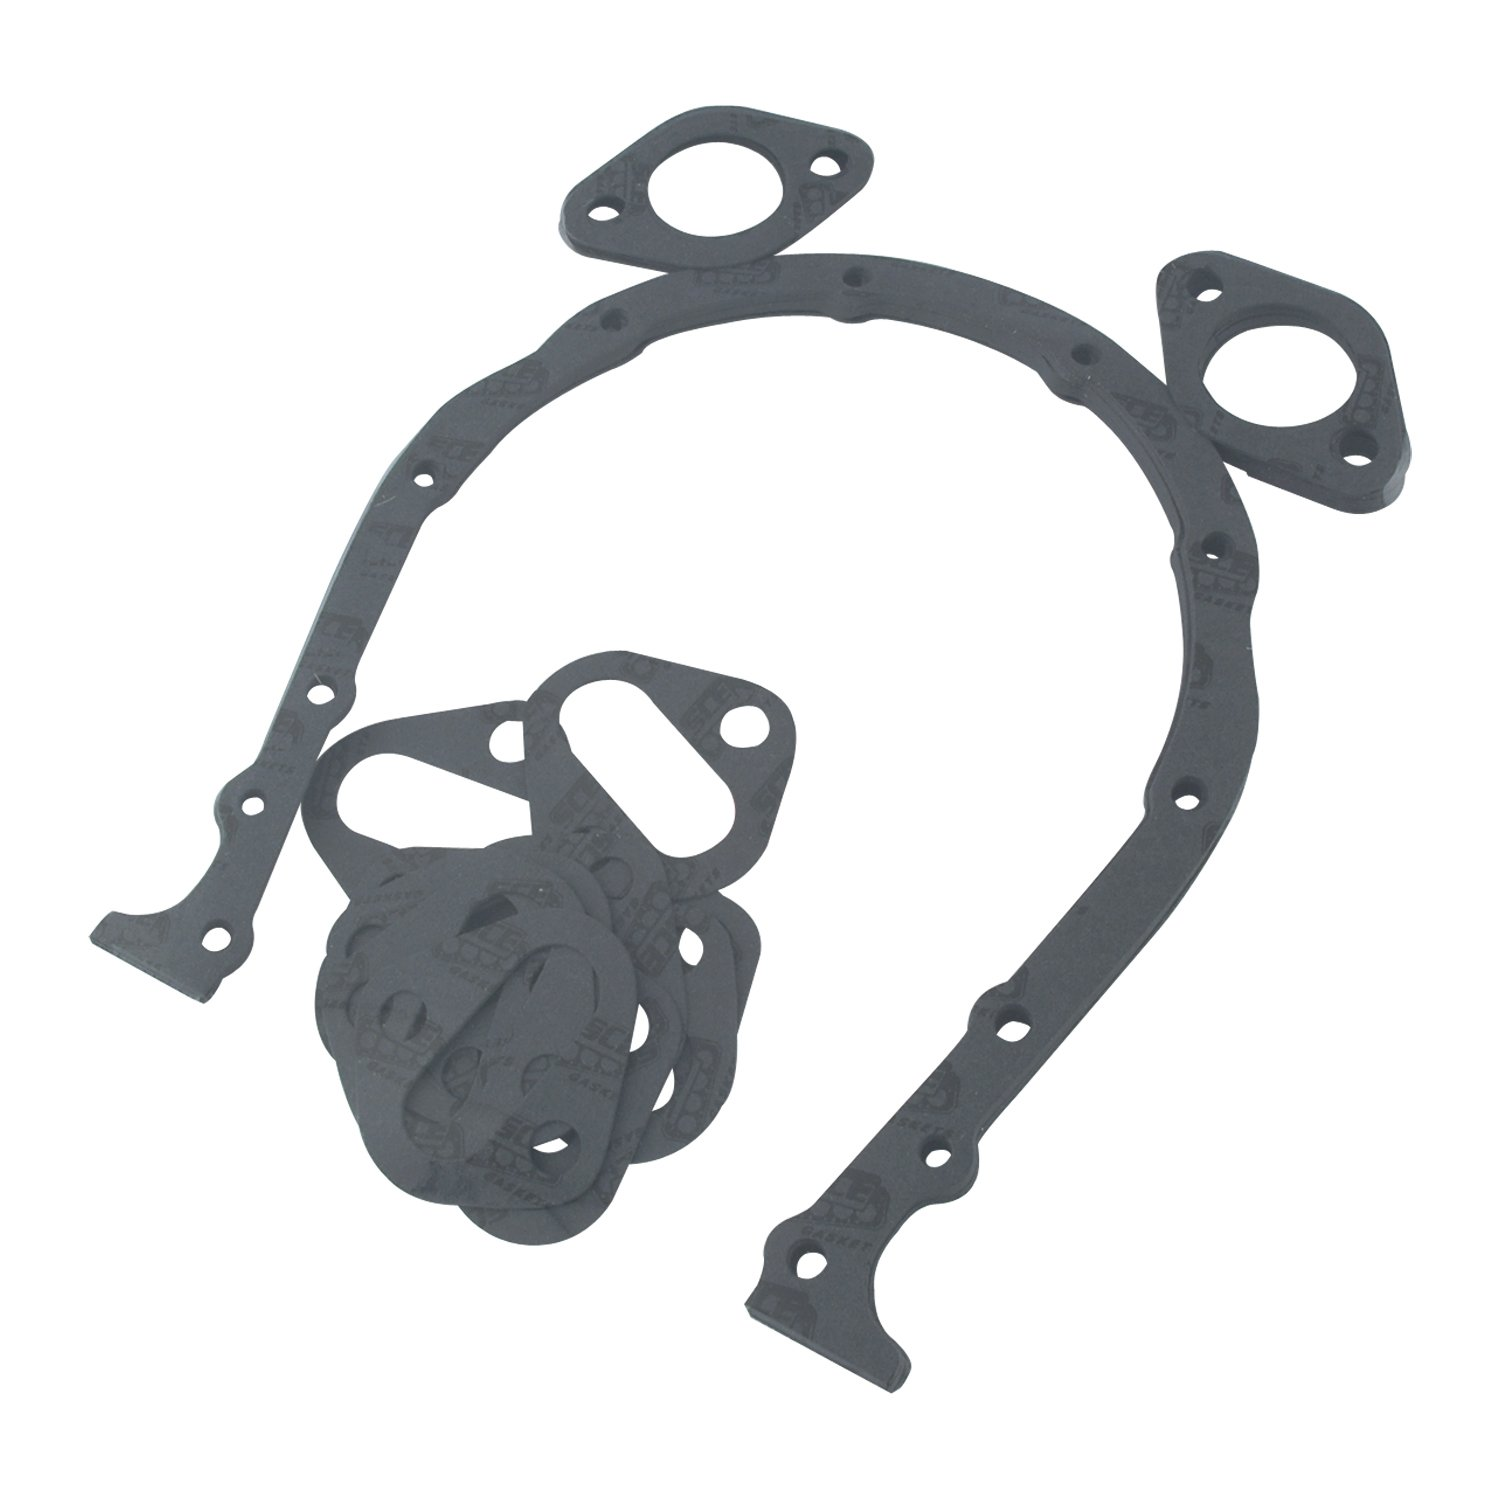 SCE Gasket 1300-10 Timing Cover and Water Pump Gasket - 10 Pack SCE Gaskets